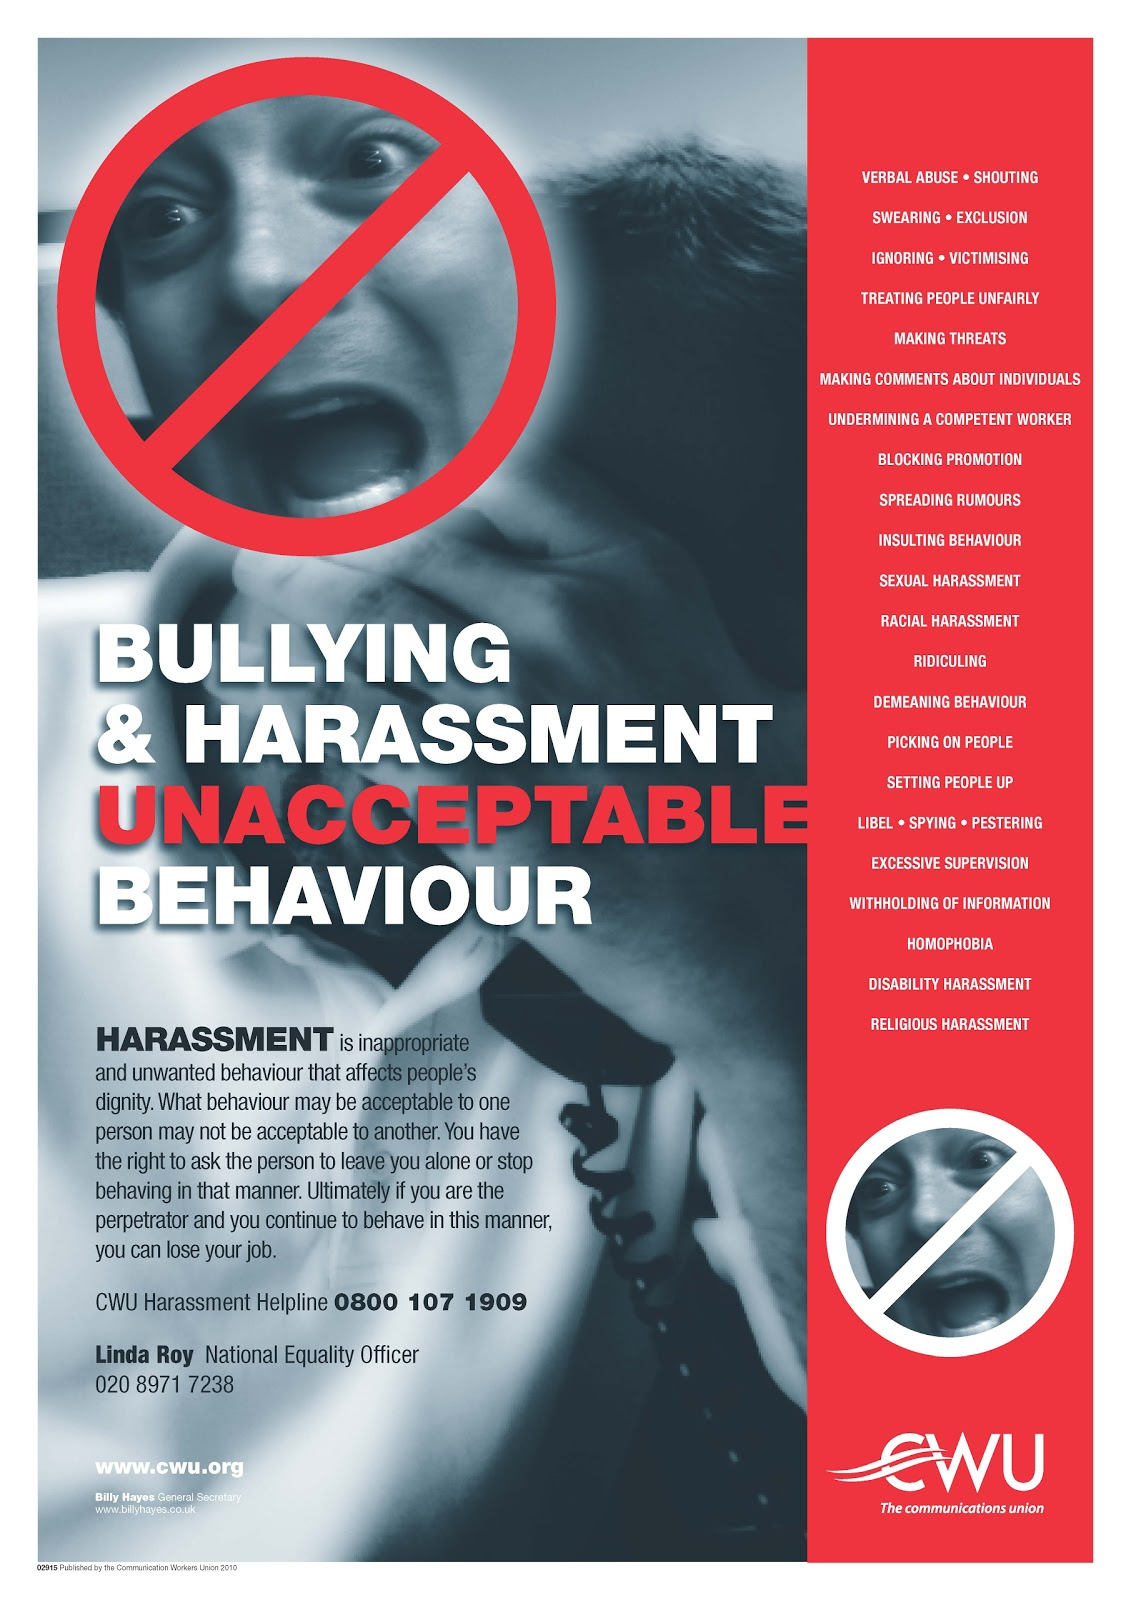 Trade Union Representative >> Equality for All: Bullying and Harassment Poster